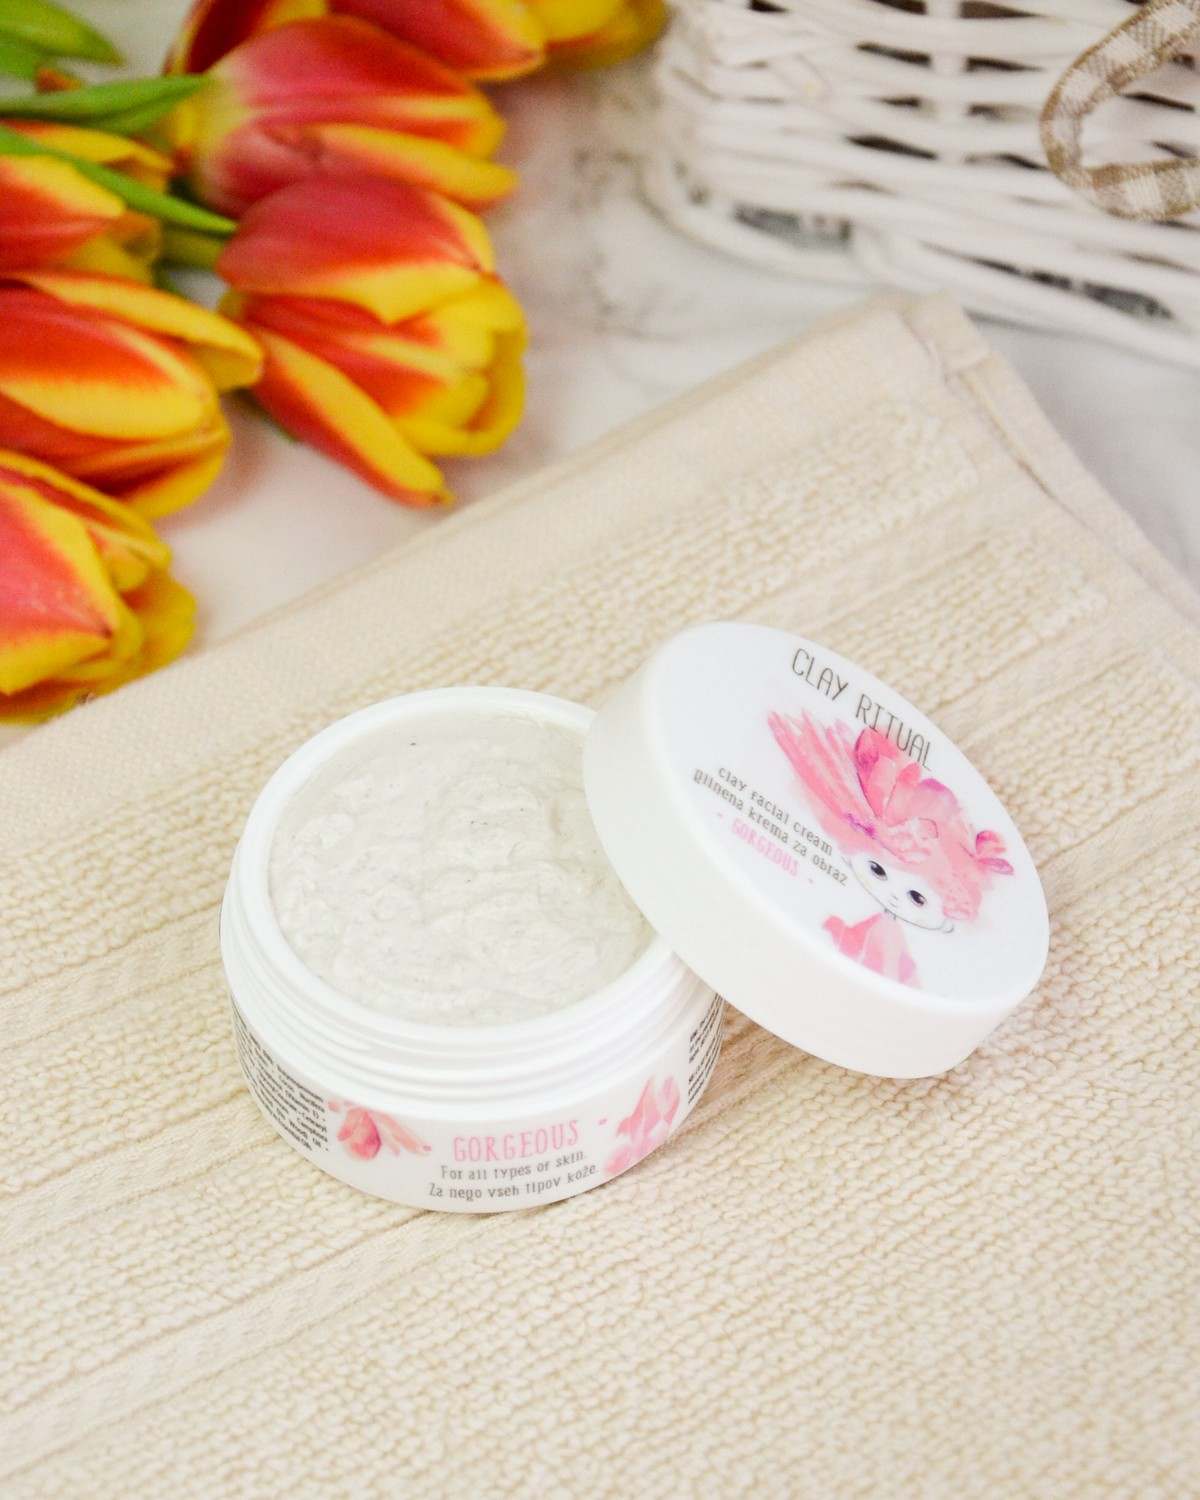 Clay Facial Cream from Clay Ritual - Glina.si Glinena Krema